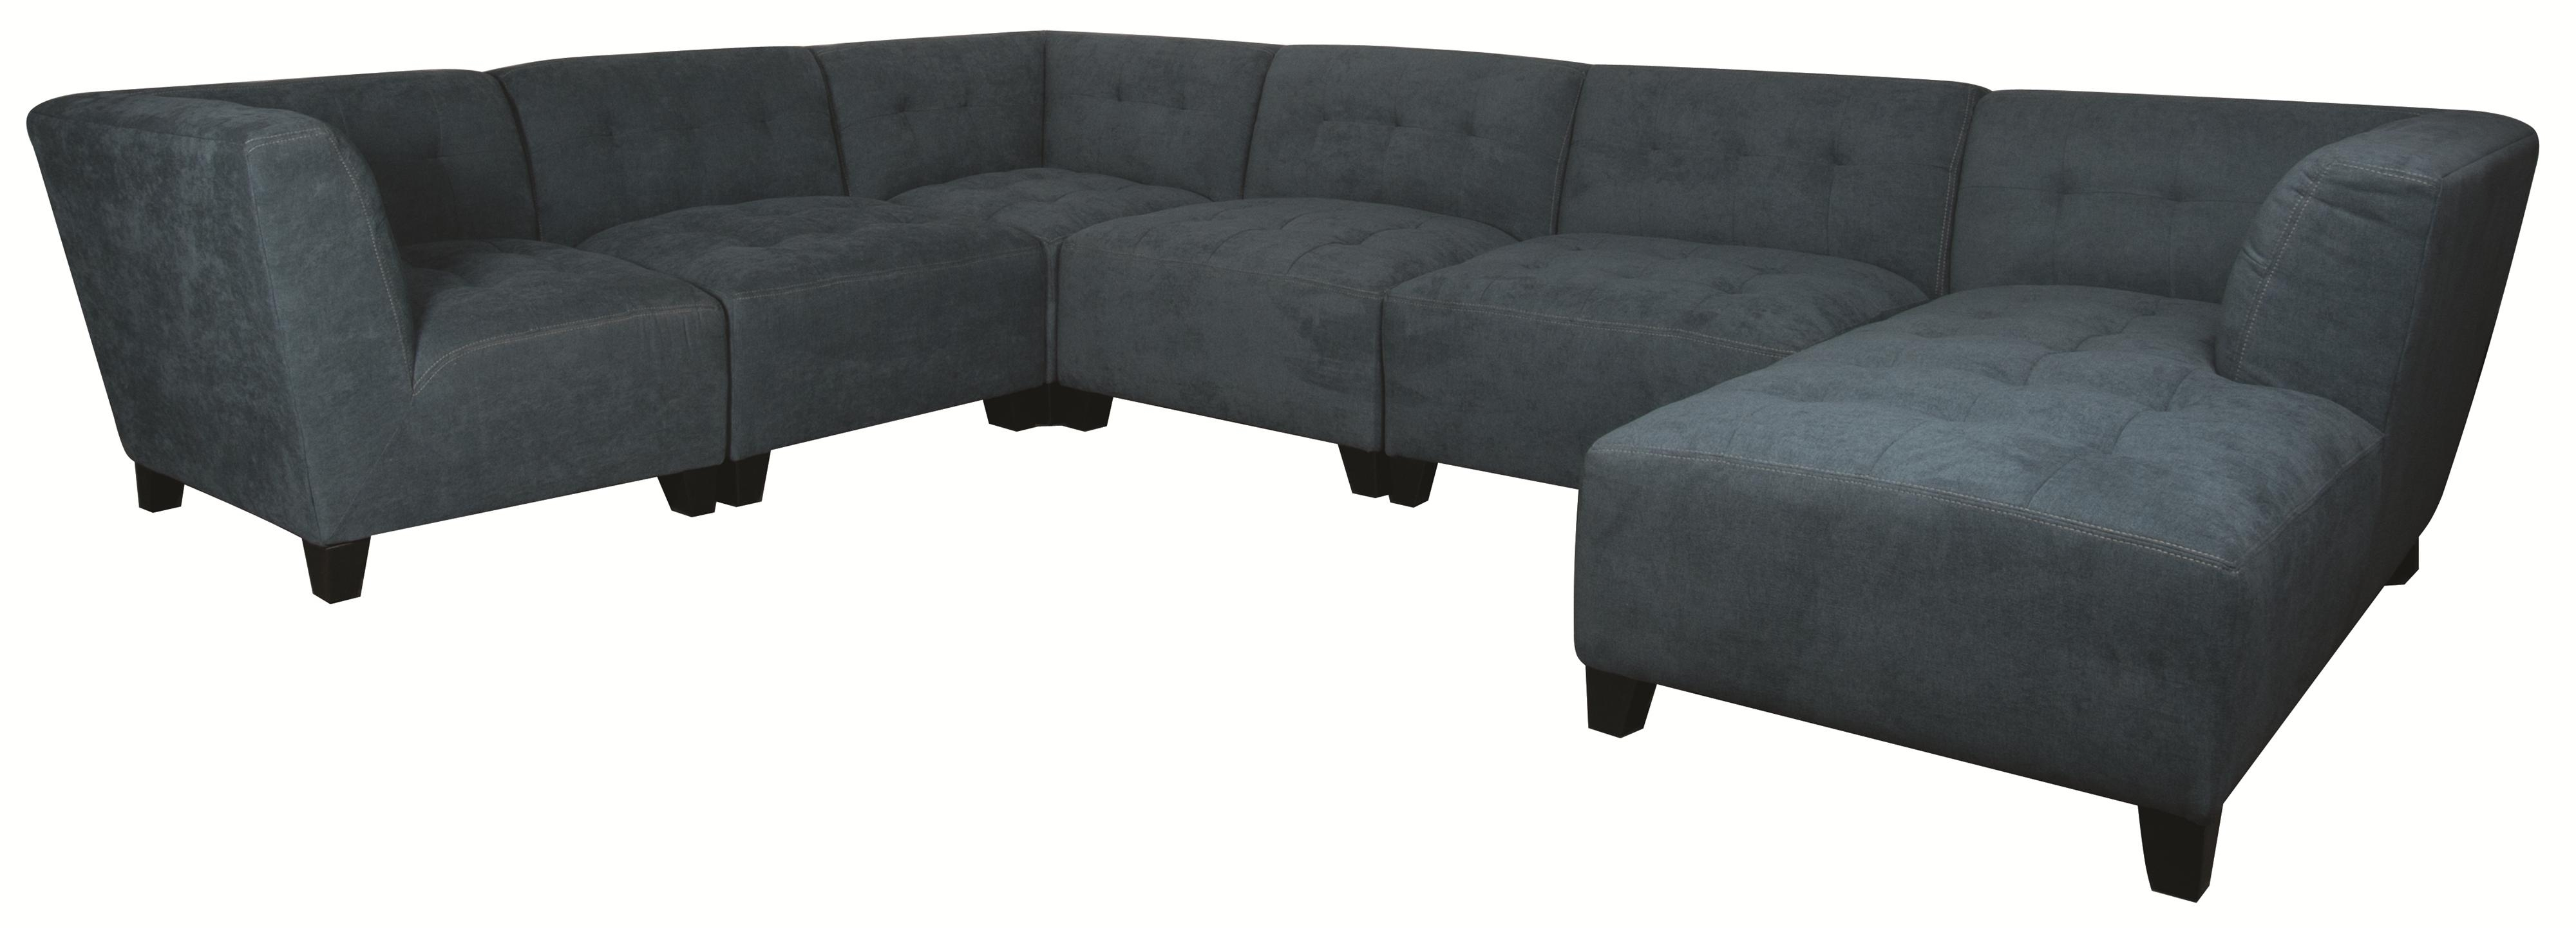 Emerson 6 Piece Sectional Sofa – Morris Home Furnishings – Sofa For Dayton Ohio Sectional Sofas (View 9 of 10)